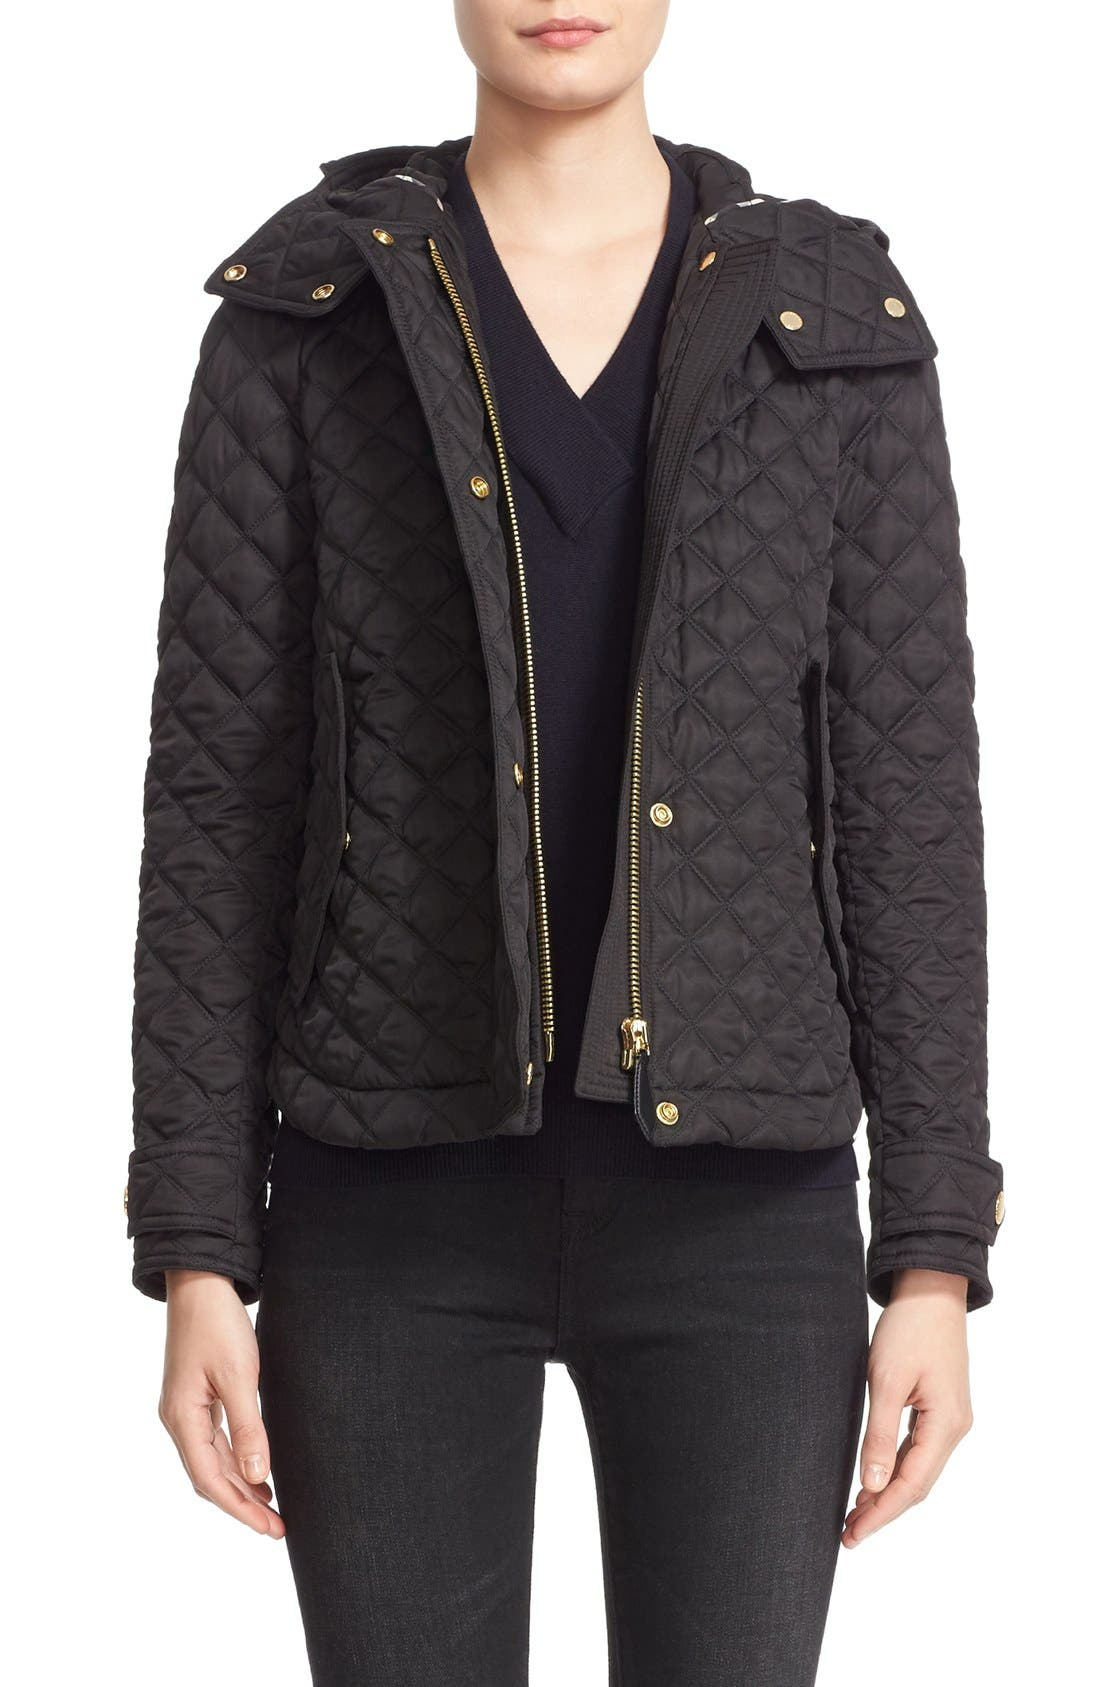 BURBERRY BRIT 'Leightonbury' Quilted Hooded Jacket, Main, color, 001